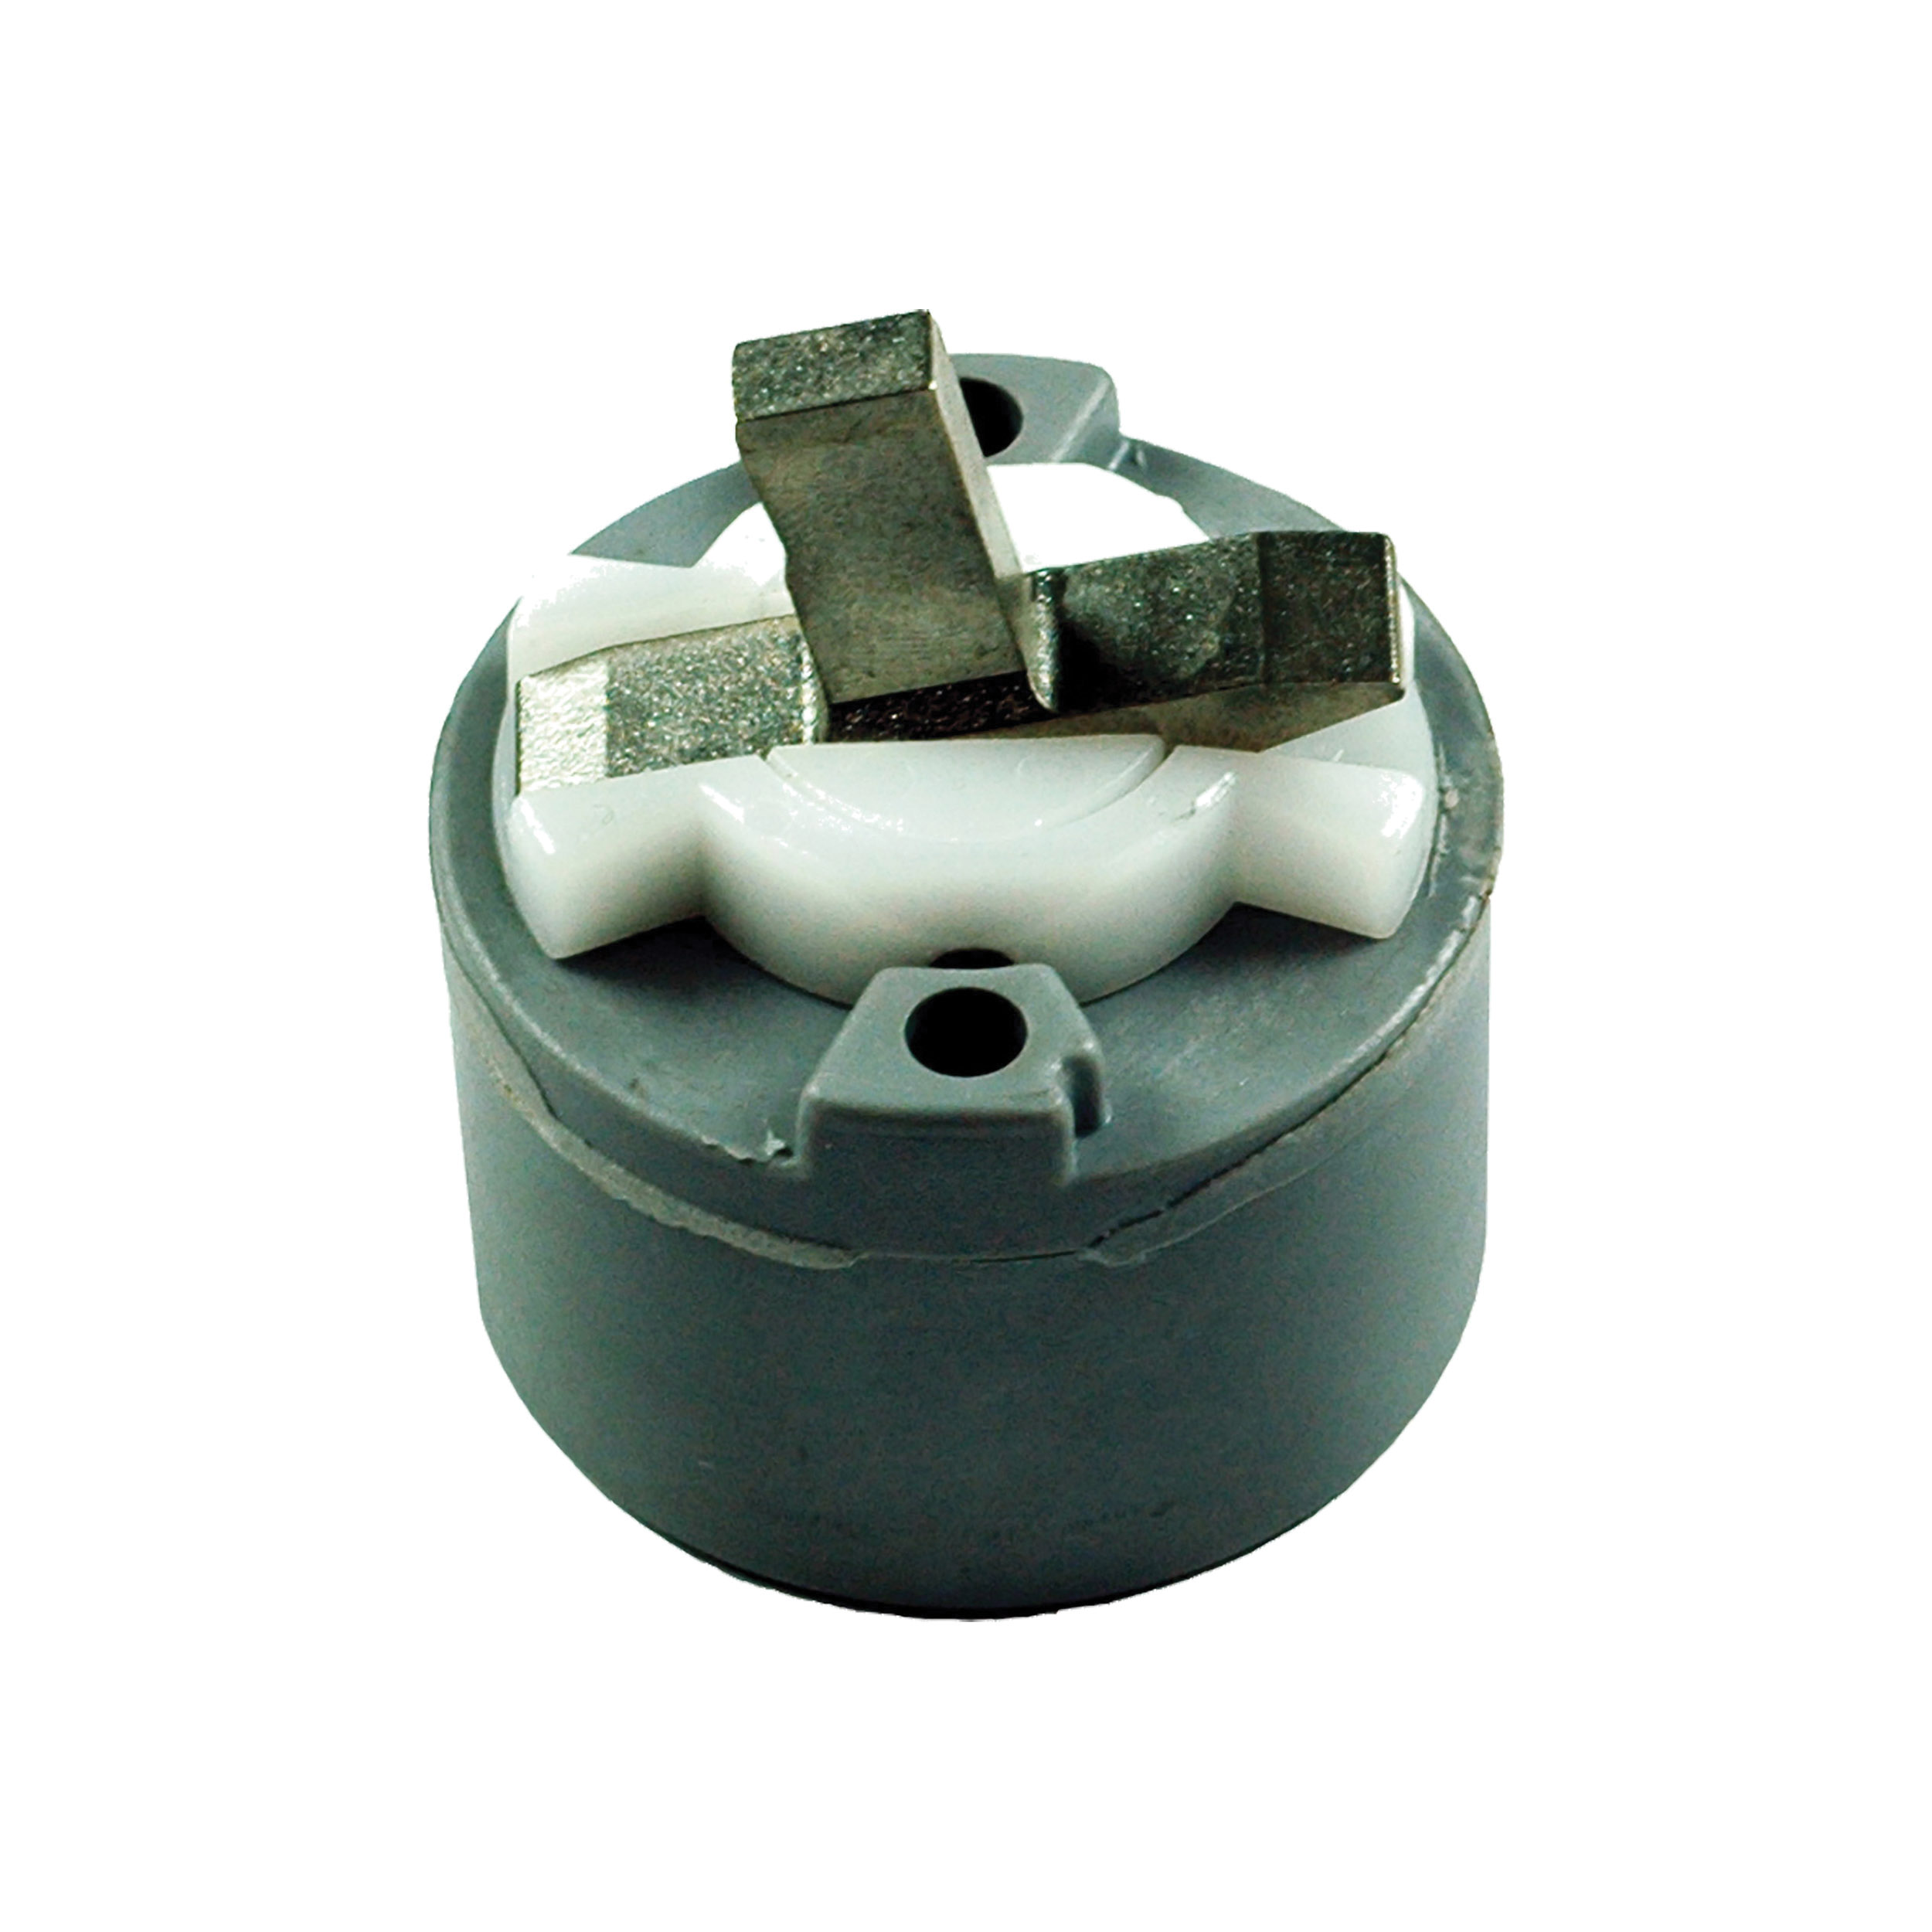 Consolidated Supply Co American Standard 057864 0070a Replacement Faucet Valve Cartridge For Use With Aquarian Lyons And Sears Lavatory And Kitchen Faucet 4 Gpm 1 3 4 In Dia Import